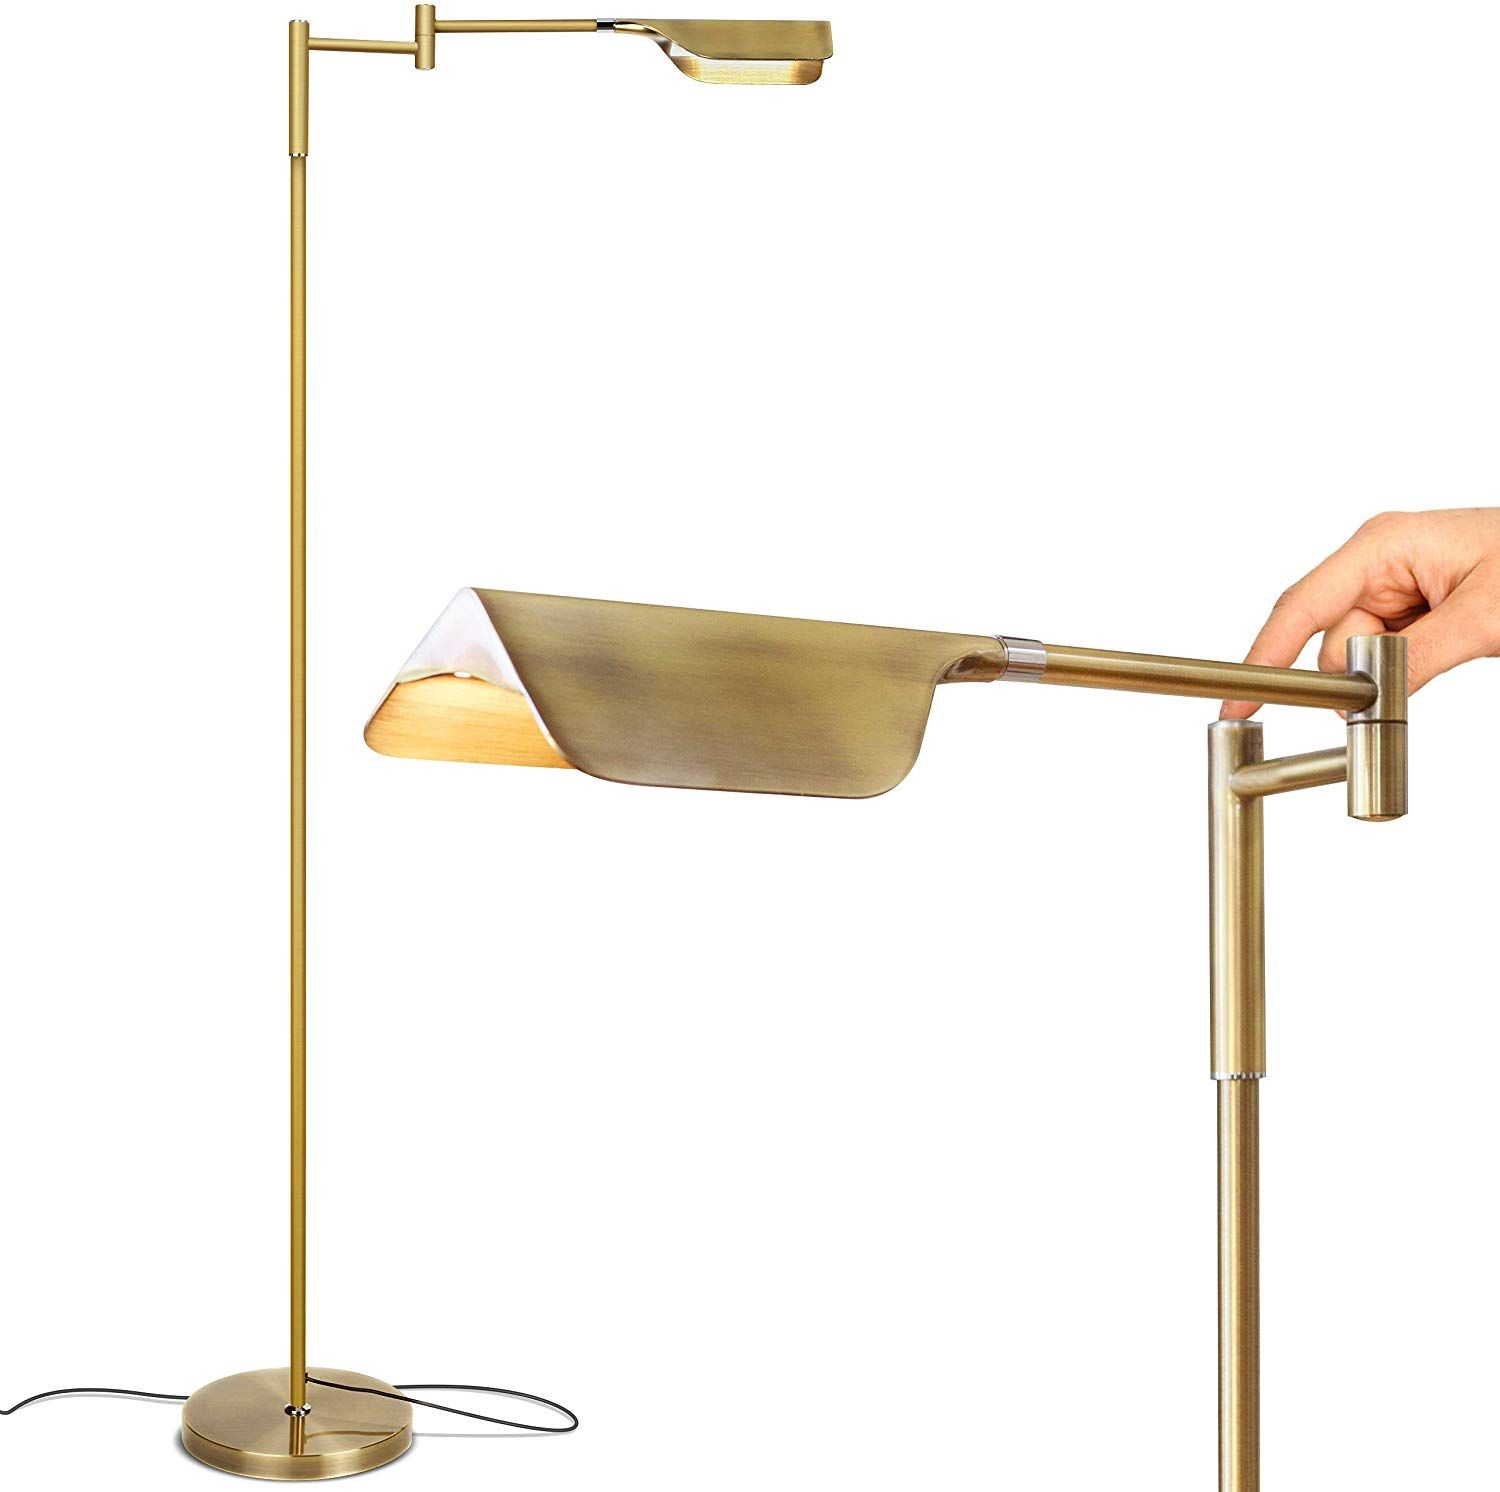 Brightech Leaf Touch LED Floor Lamp for Reading, Crafts